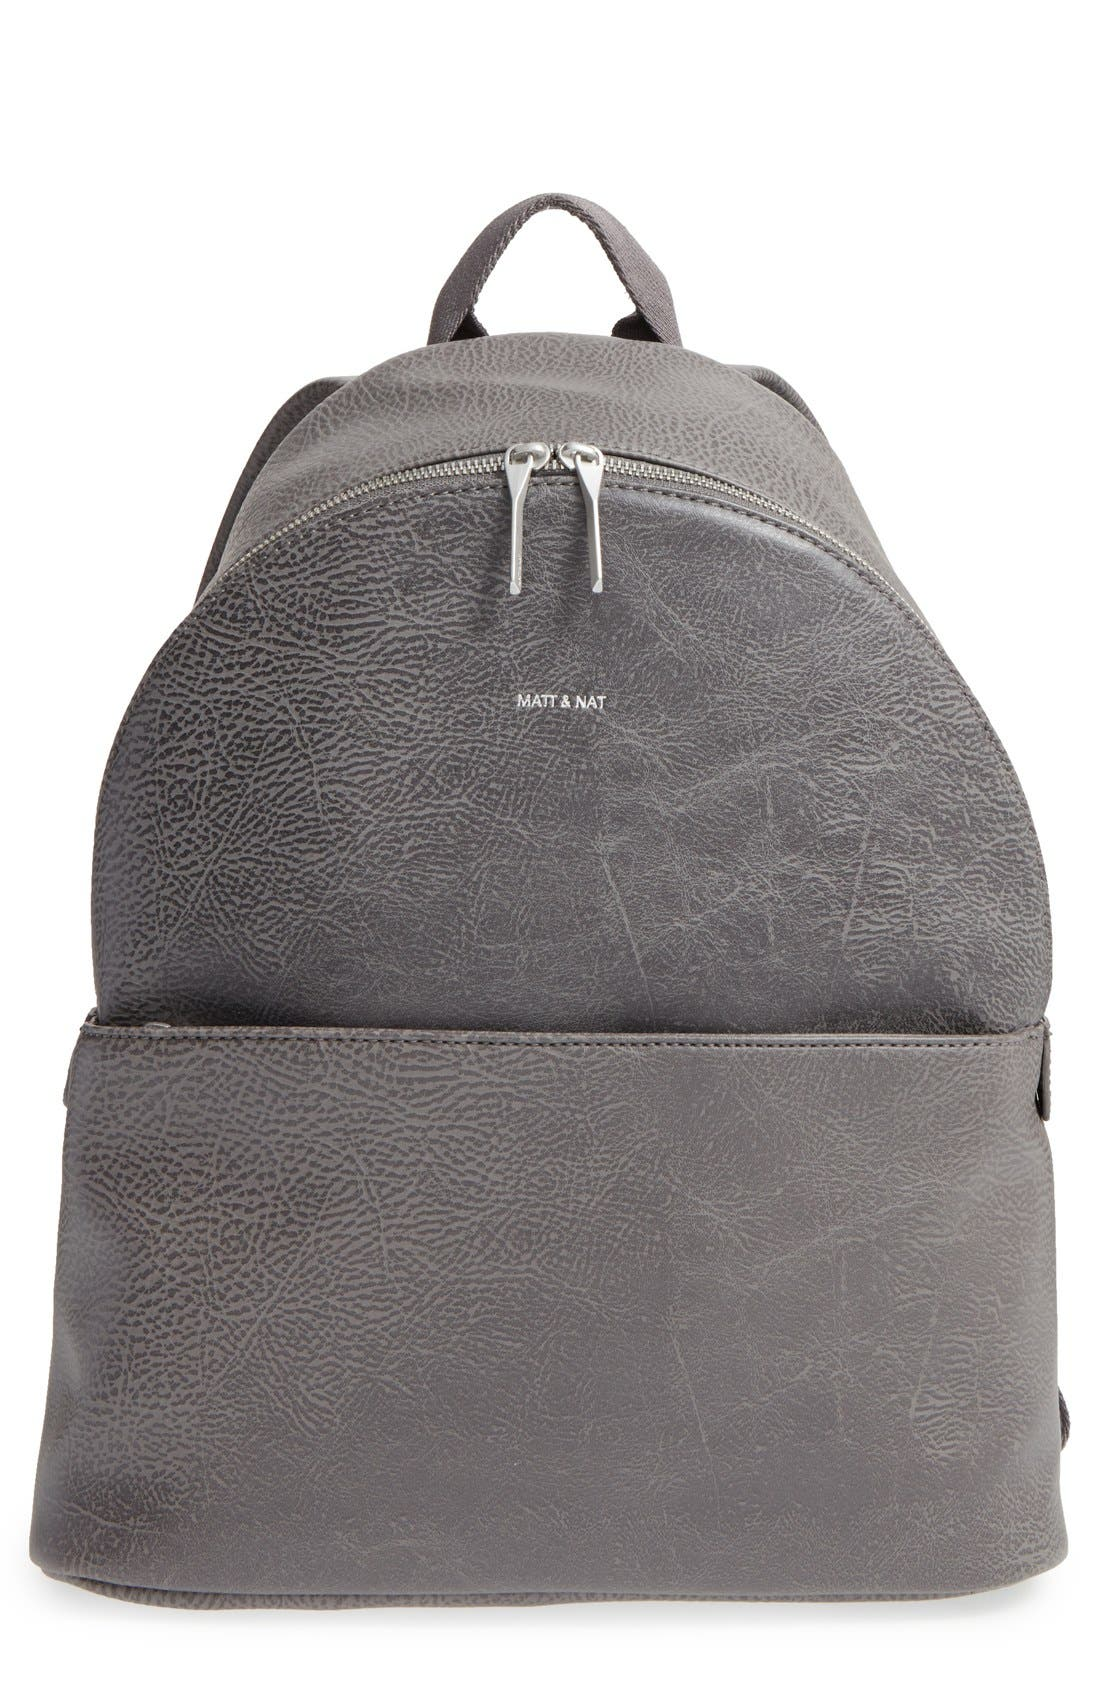 Main Image - Matt & Nat 'July' Faux Leather Backpack